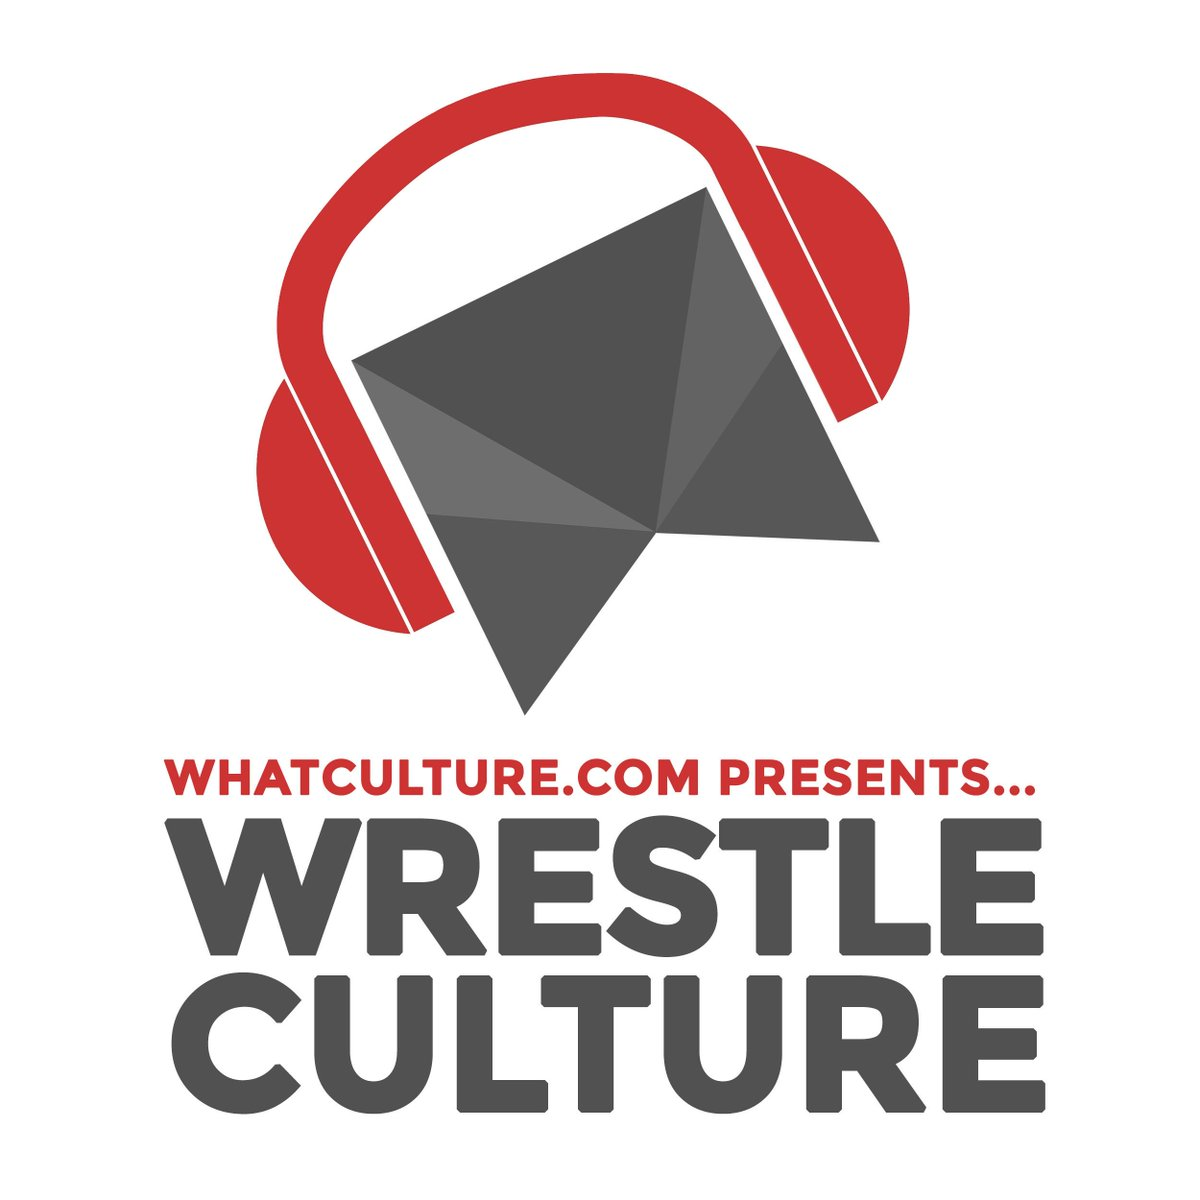 #WrestleCulture is HERE!  Adam, Adam & Adam chat about the #SuperstarShakeUp & what it means for #RAW and #SmackDownLIVE going forward, look ahead to some of the matches at the #GreatestRoyalRumble, and theres a quiz on the WWE Draft. ENJOY!  #WWE  aca.st/fc2797